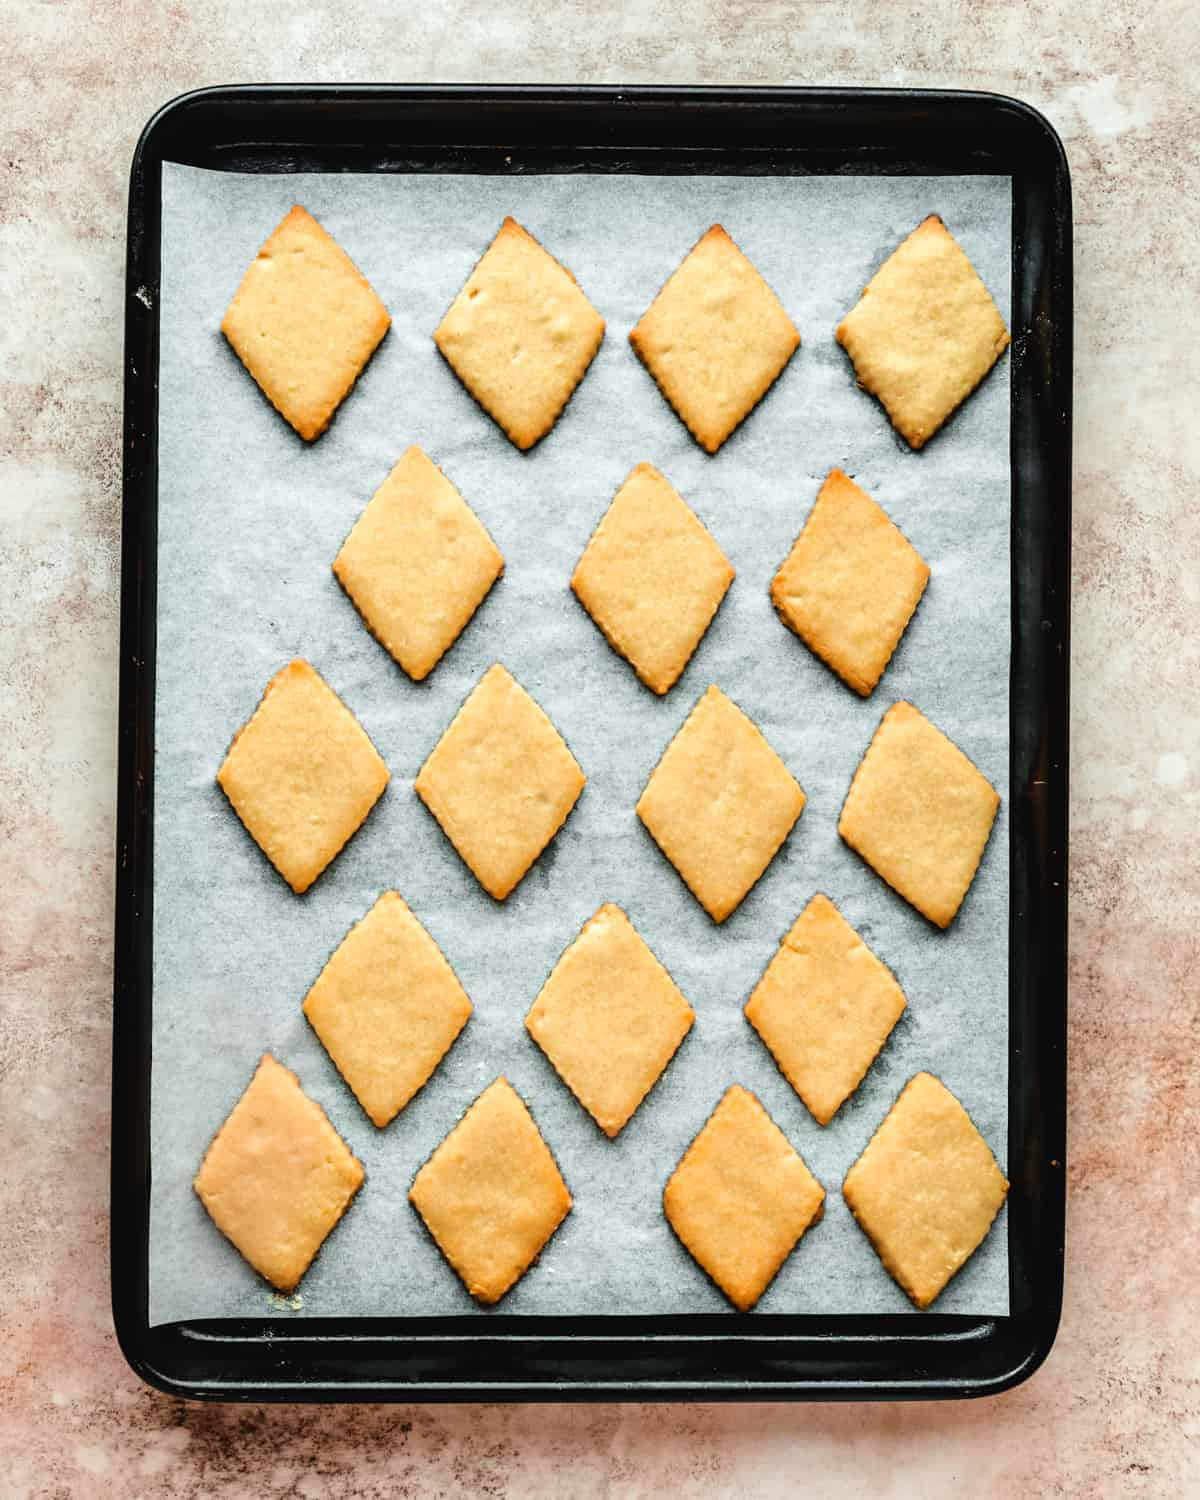 baking sheet with baked greek cookies on it